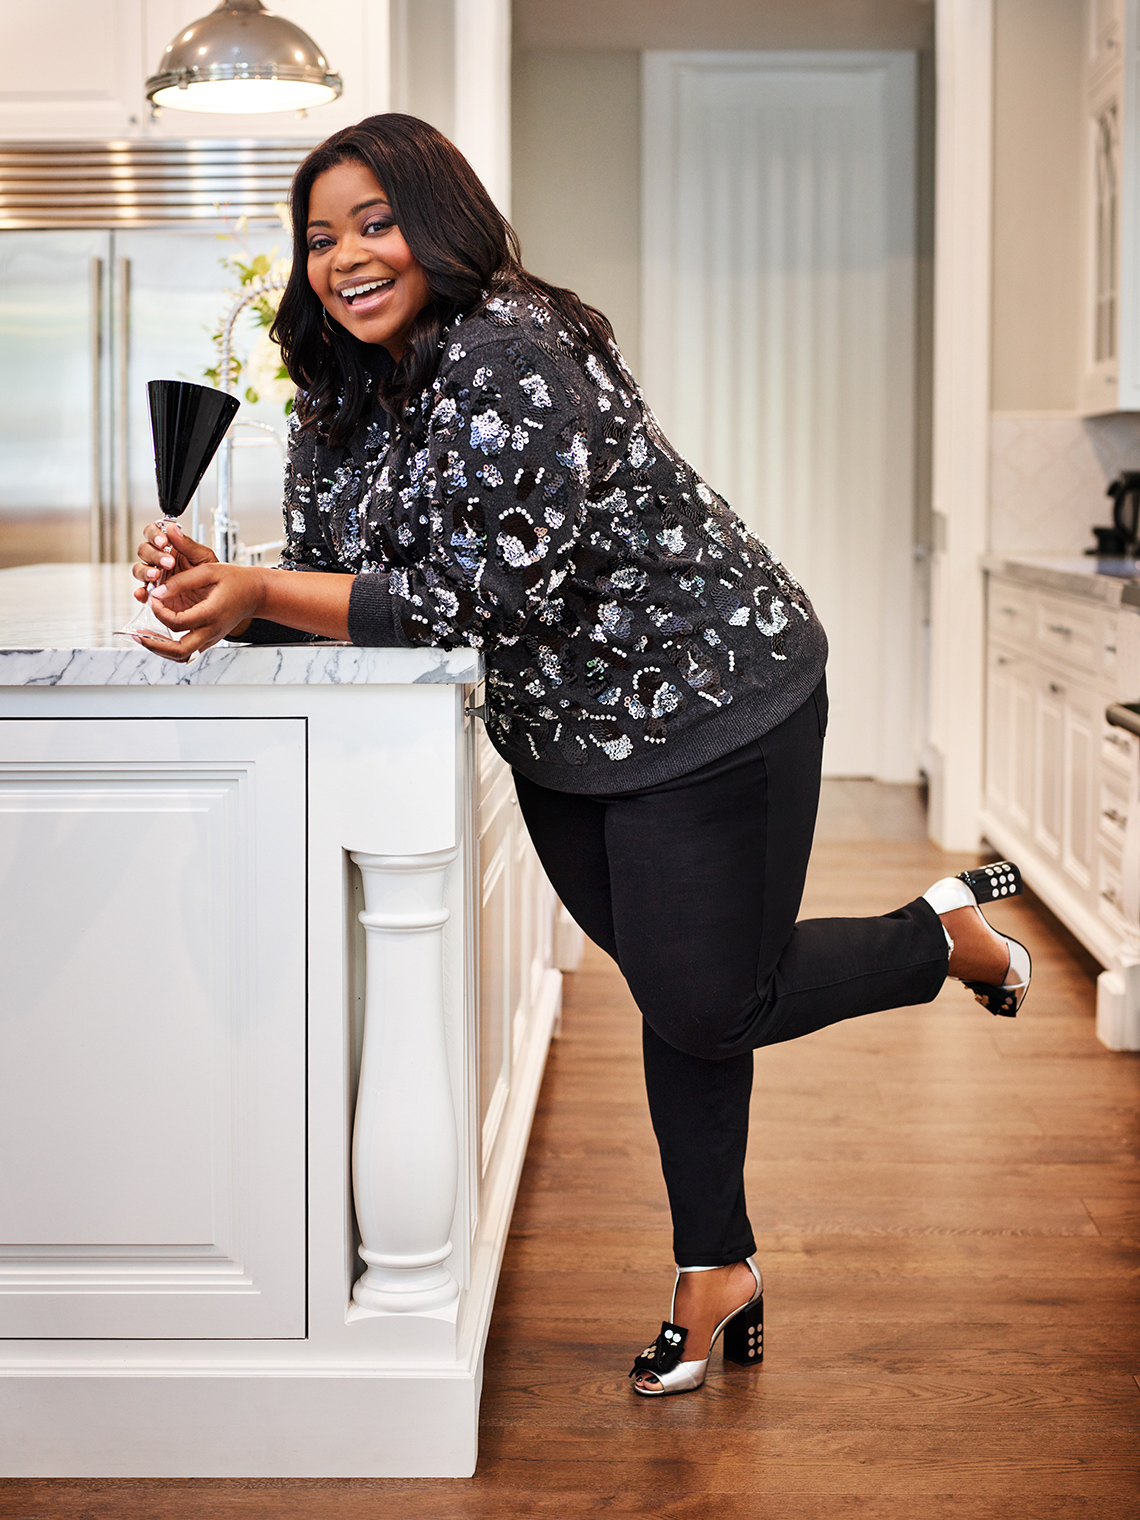 1140-dec-jan-atm-octavia-spencer-kitchen.imgcache.rev5761c8e3cf25f02f4ba6d0a7b4ea8e80.jpg